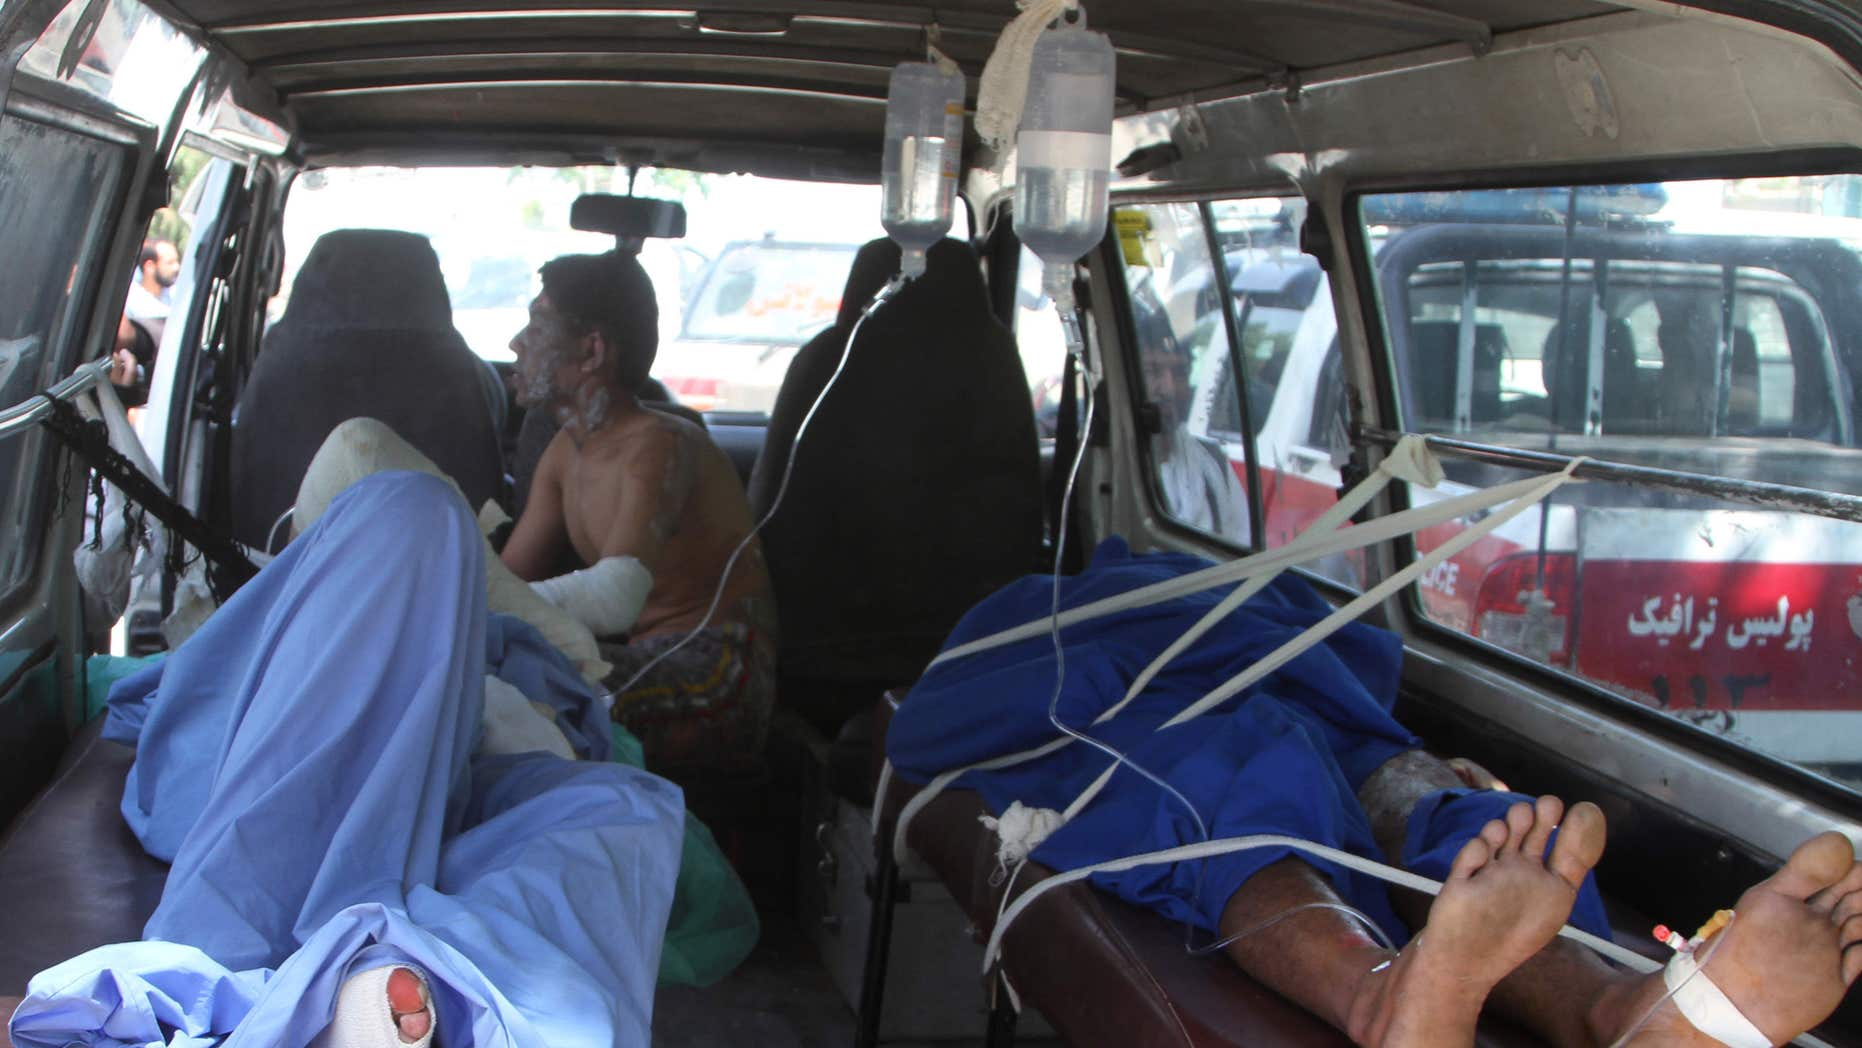 May 8, 2016: Injured Afghan men lie in an ambulance after an accident on the main highway linking the capital, Kabul, to the southern city of Kandahar, in Ghazni province eastern of Kabul, Afghanistan.